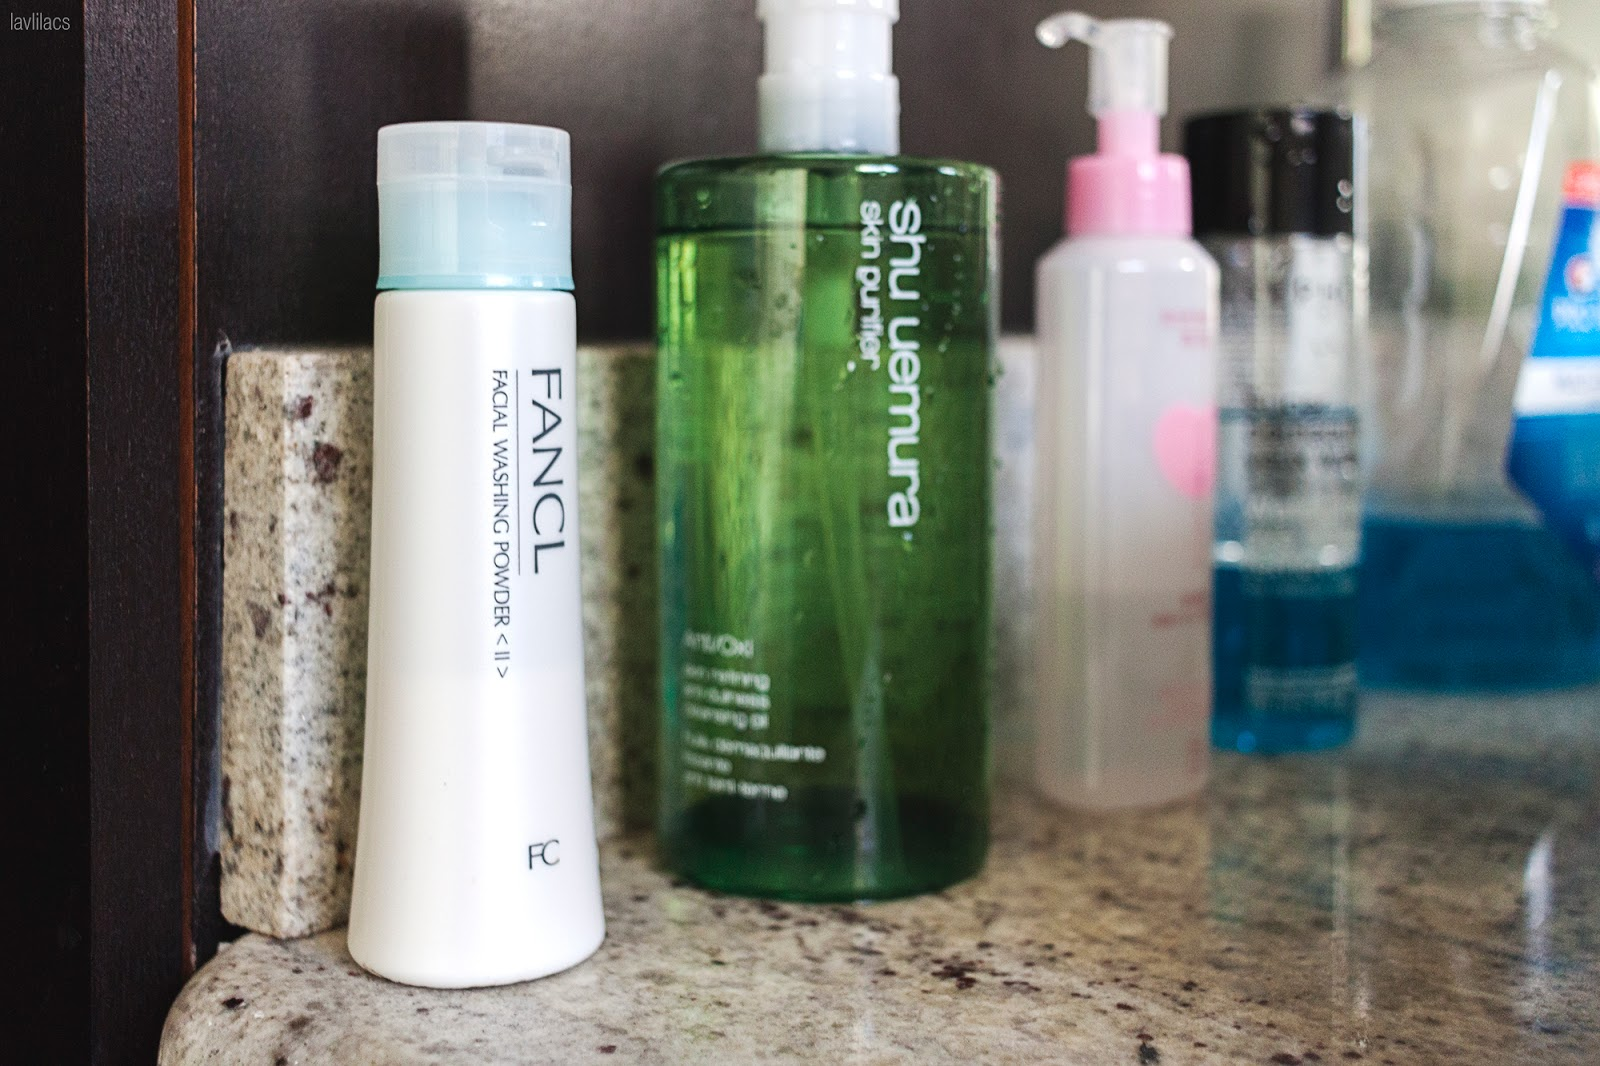 Daily cleansing skincare products on top bathroom counter